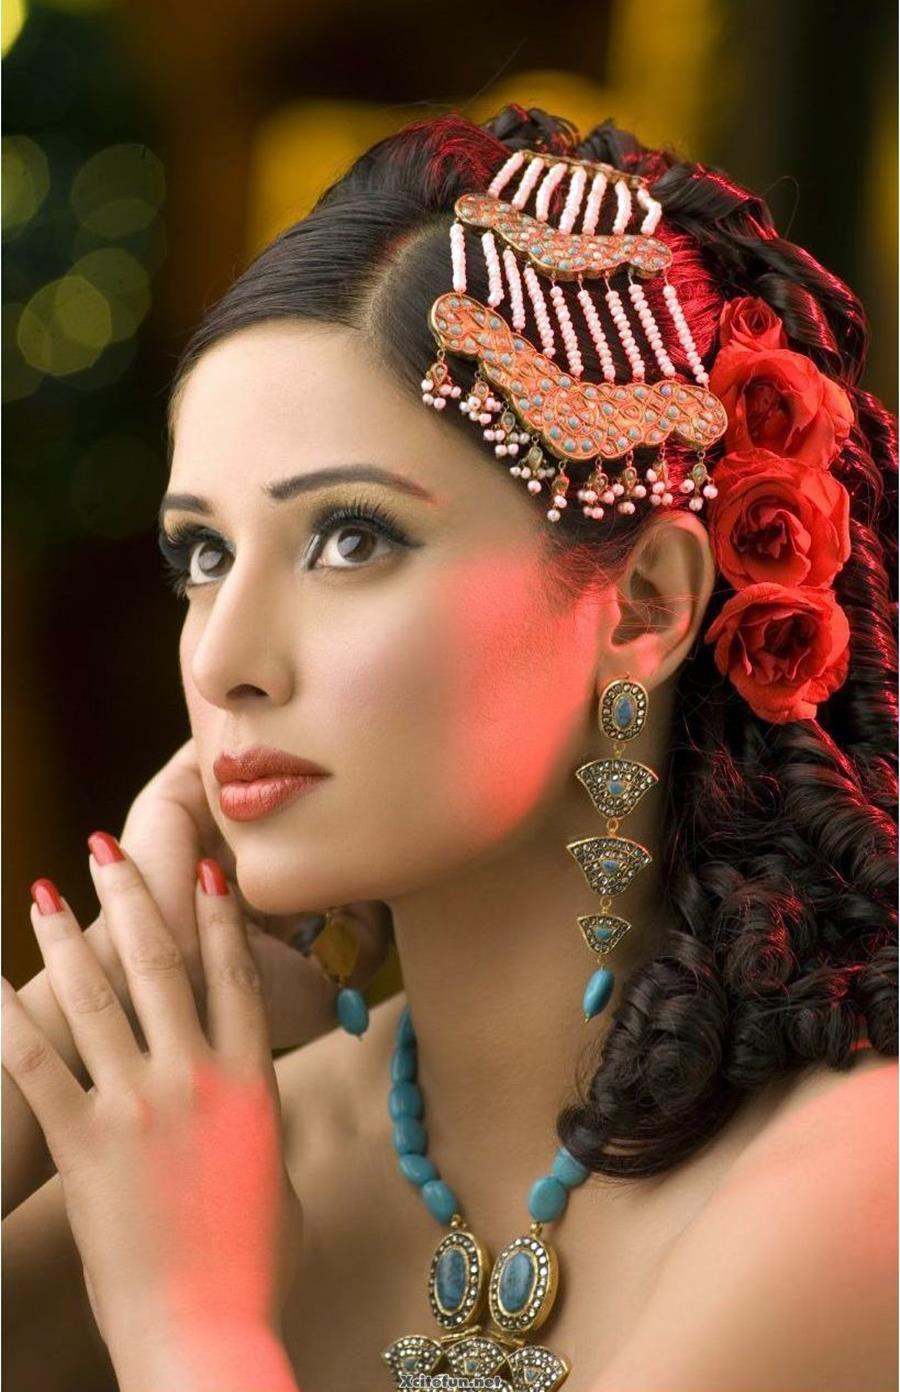 How To Do Bridal Makeup And Hairstyle : Asian Bridal Makeup And Jewelry Pics - XciteFun.net